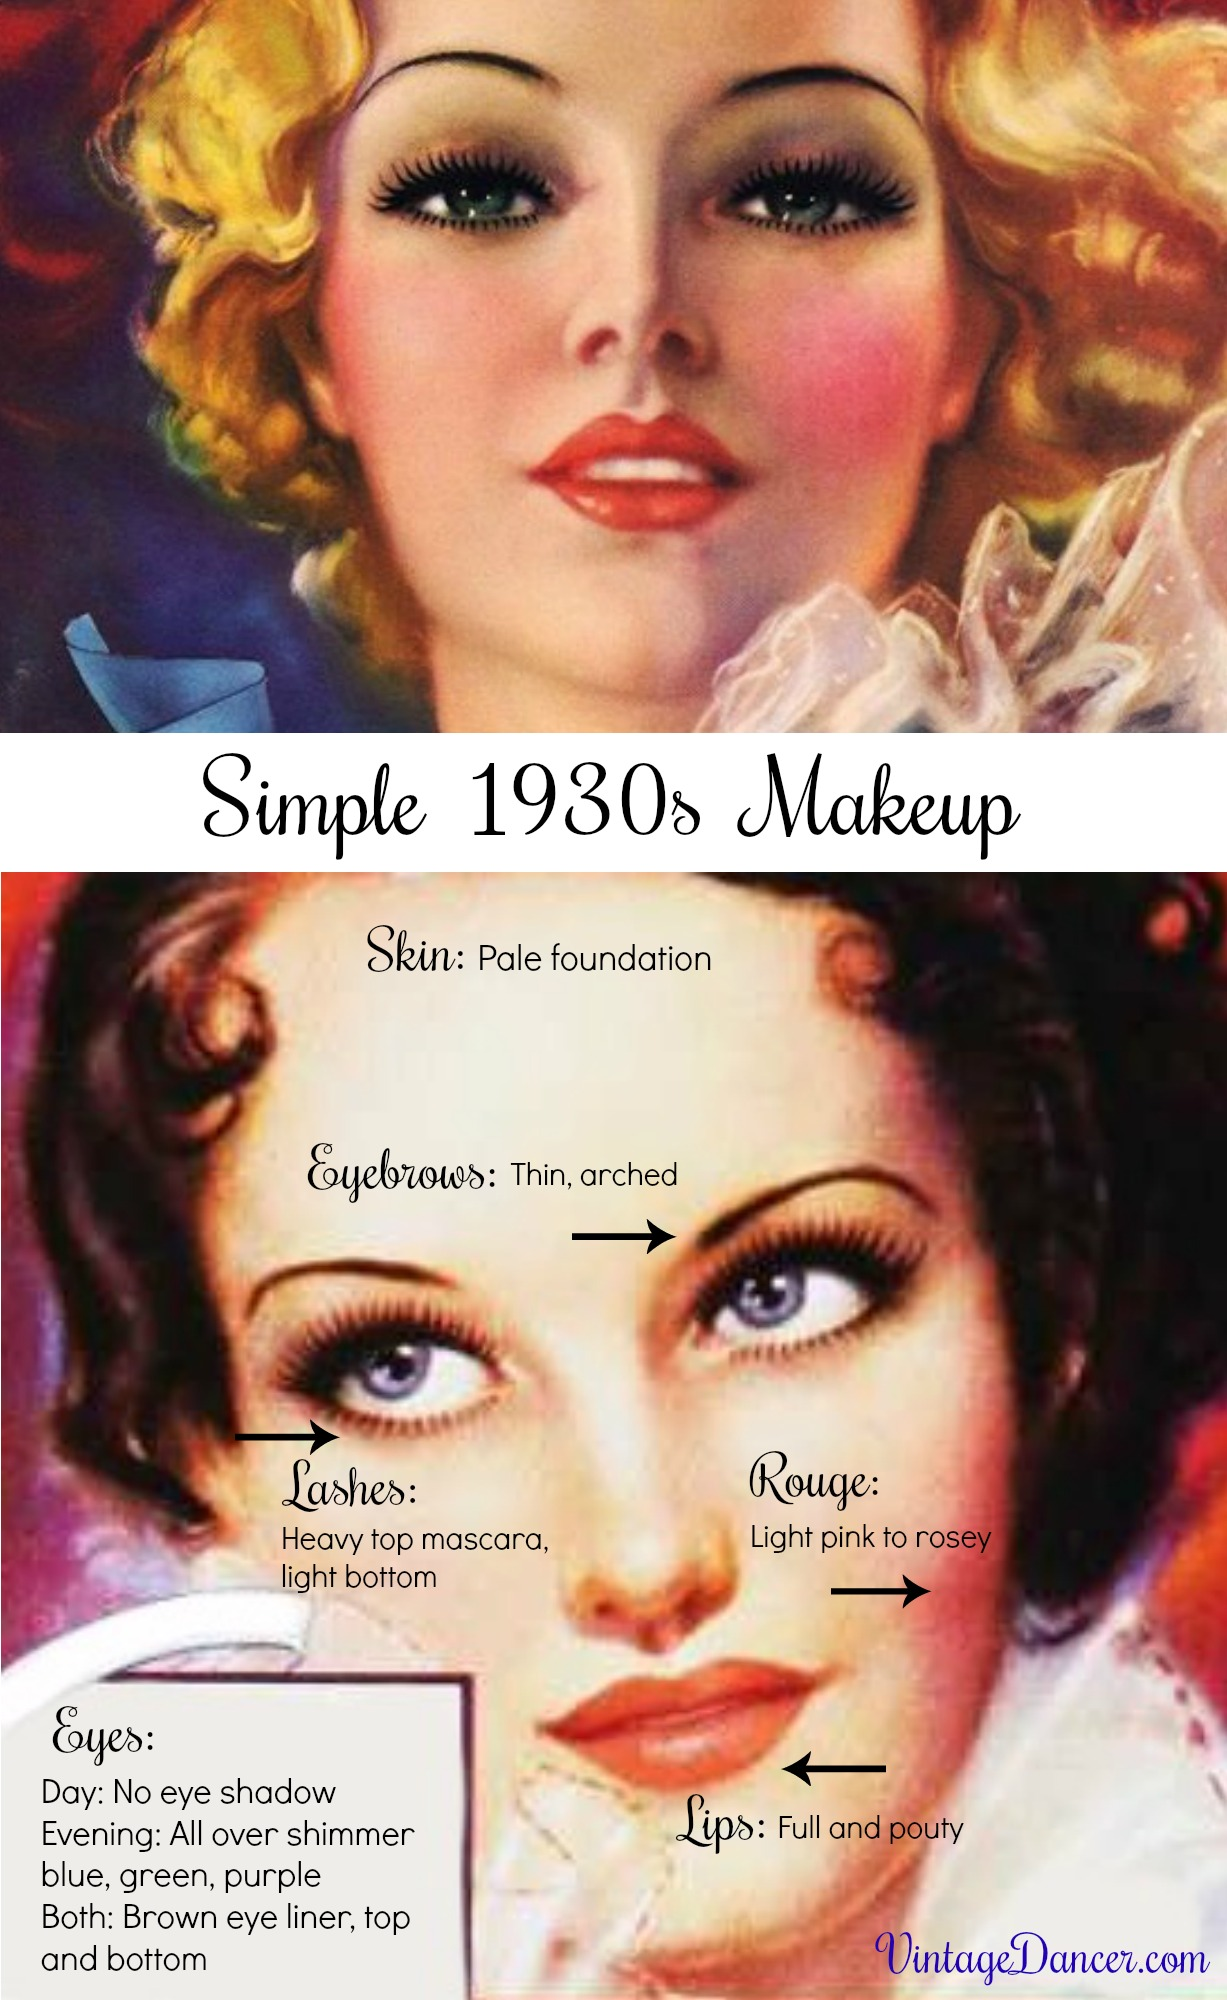 Simple, Natural 1930s Makeup Guide